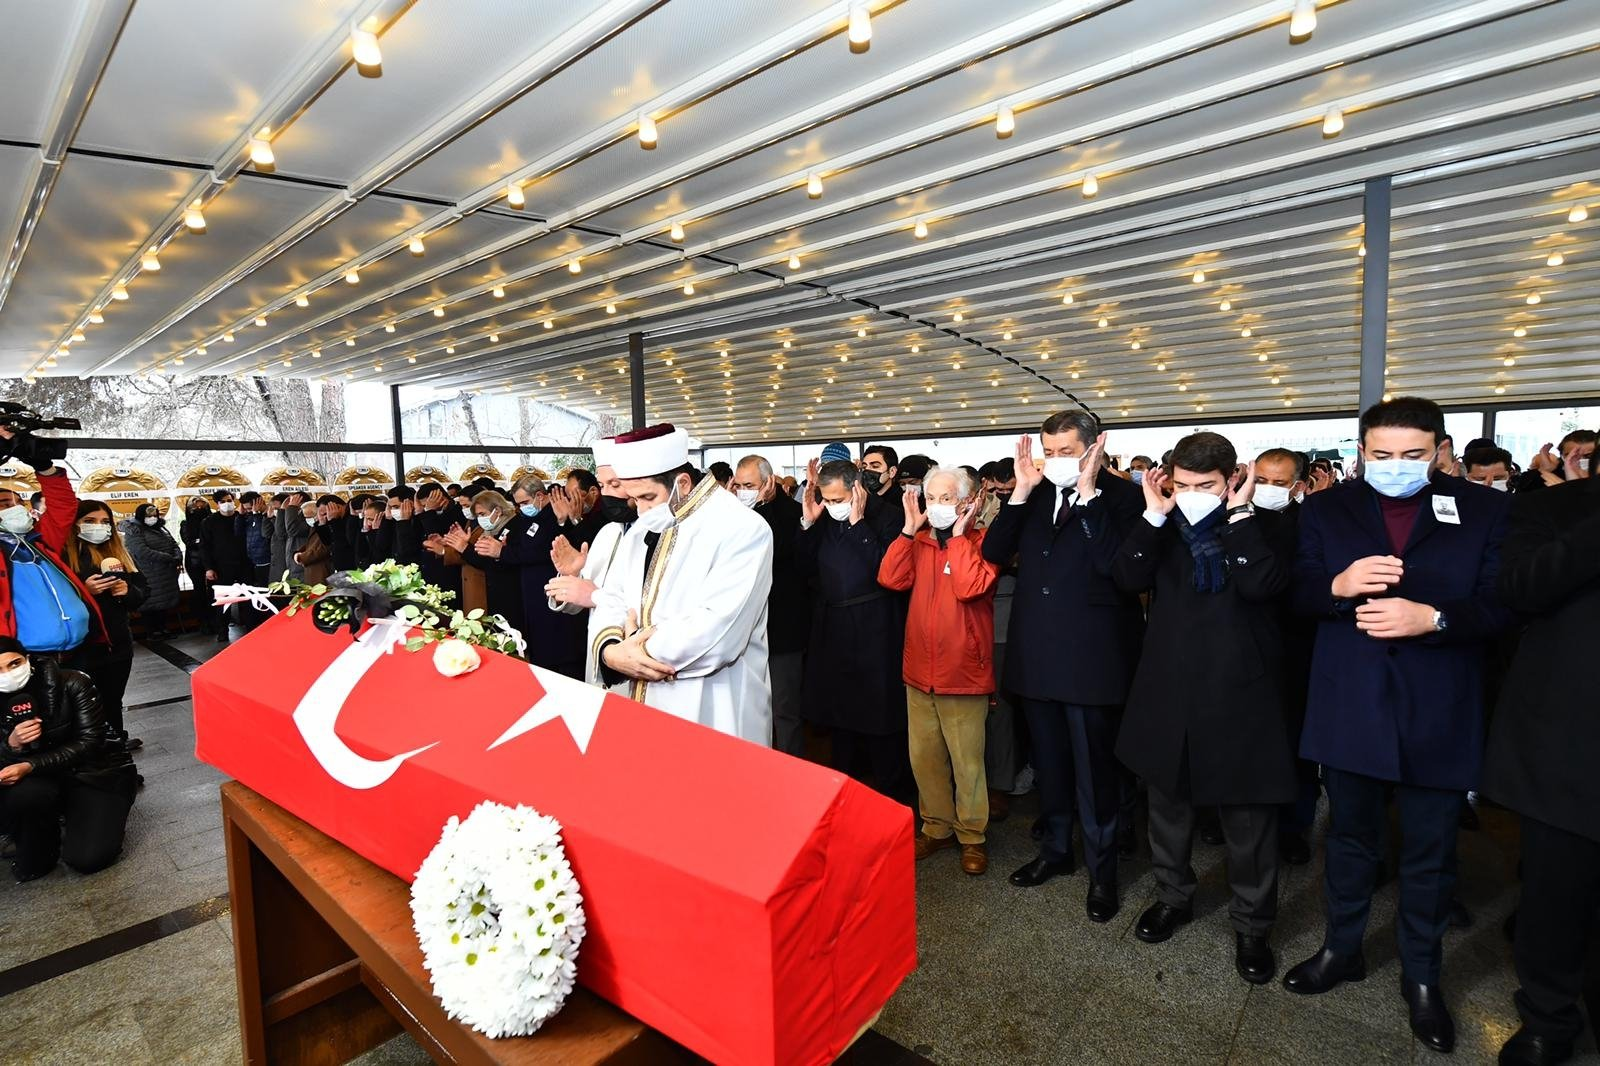 The funeral of Doğan Cüceloğlu at Levent Afet Yolal Mosque in Istanbul, Turkey, Feb. 17, 2021. (Photo by Mustafa Kaya)